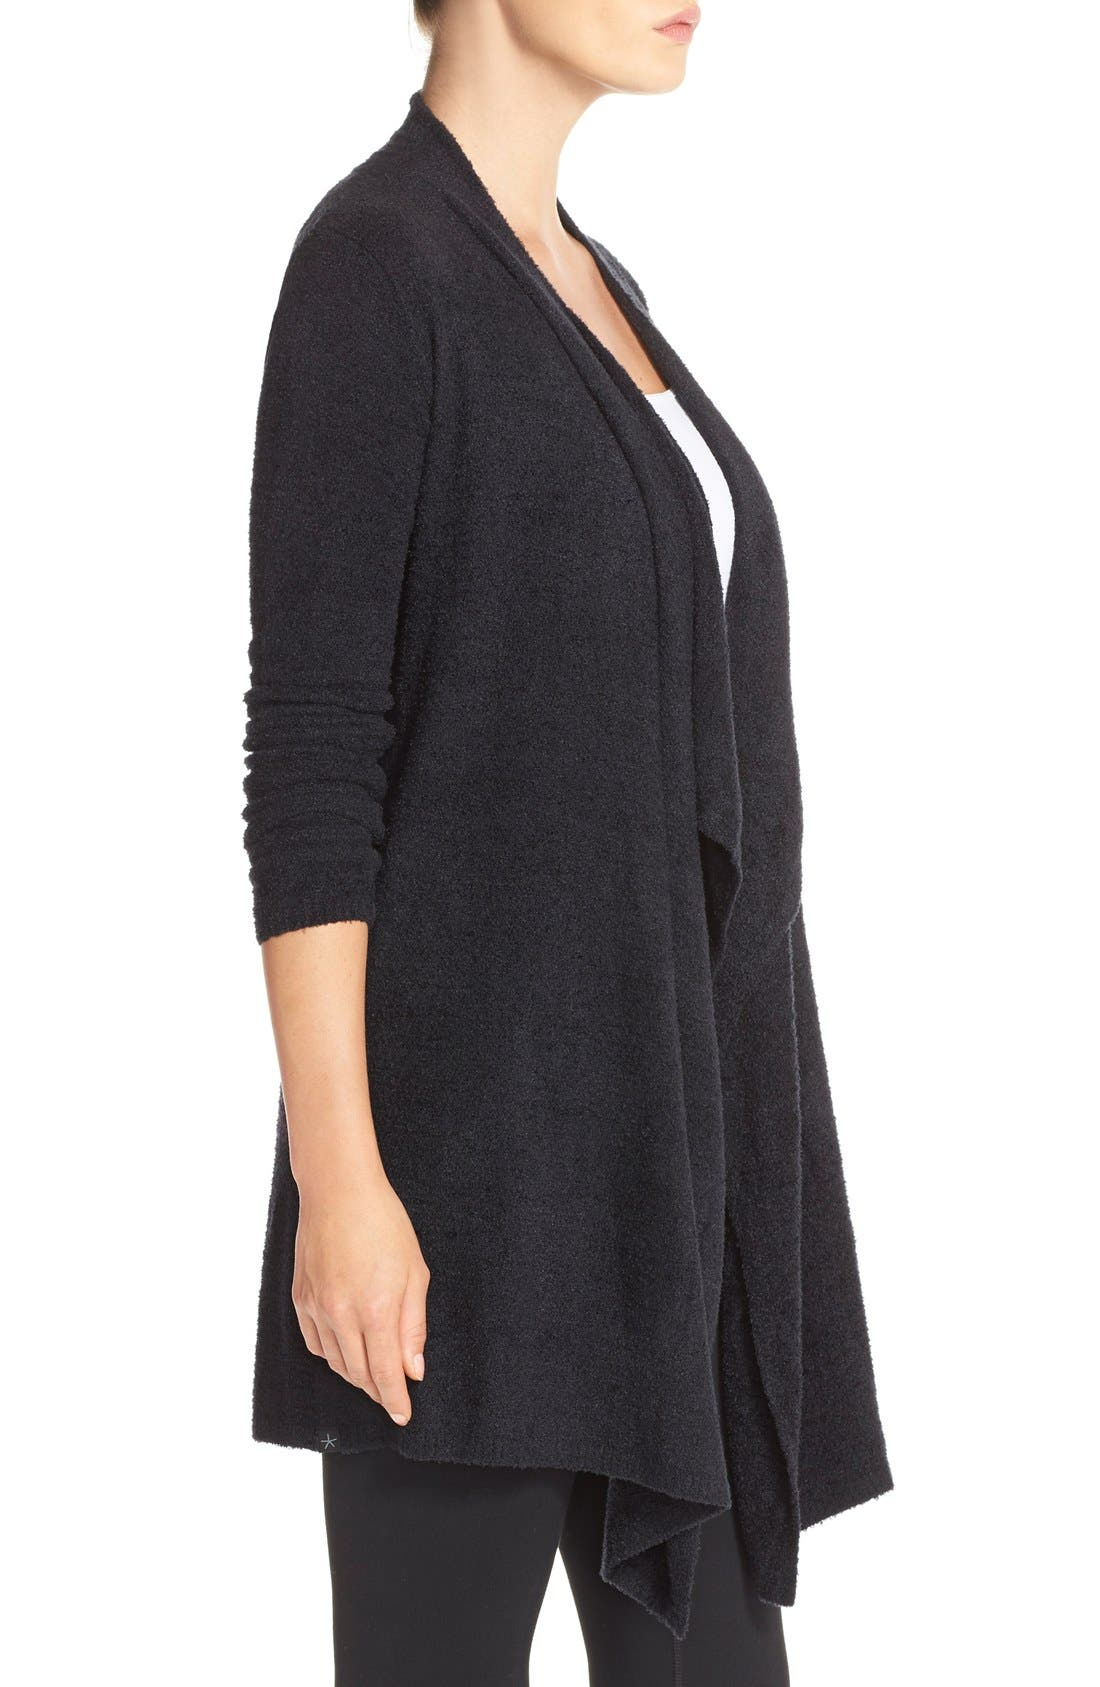 CozyChic Lite<sup>®</sup> Calypso Wrap Cardigan,                             Alternate thumbnail 10, color,                             BLACK